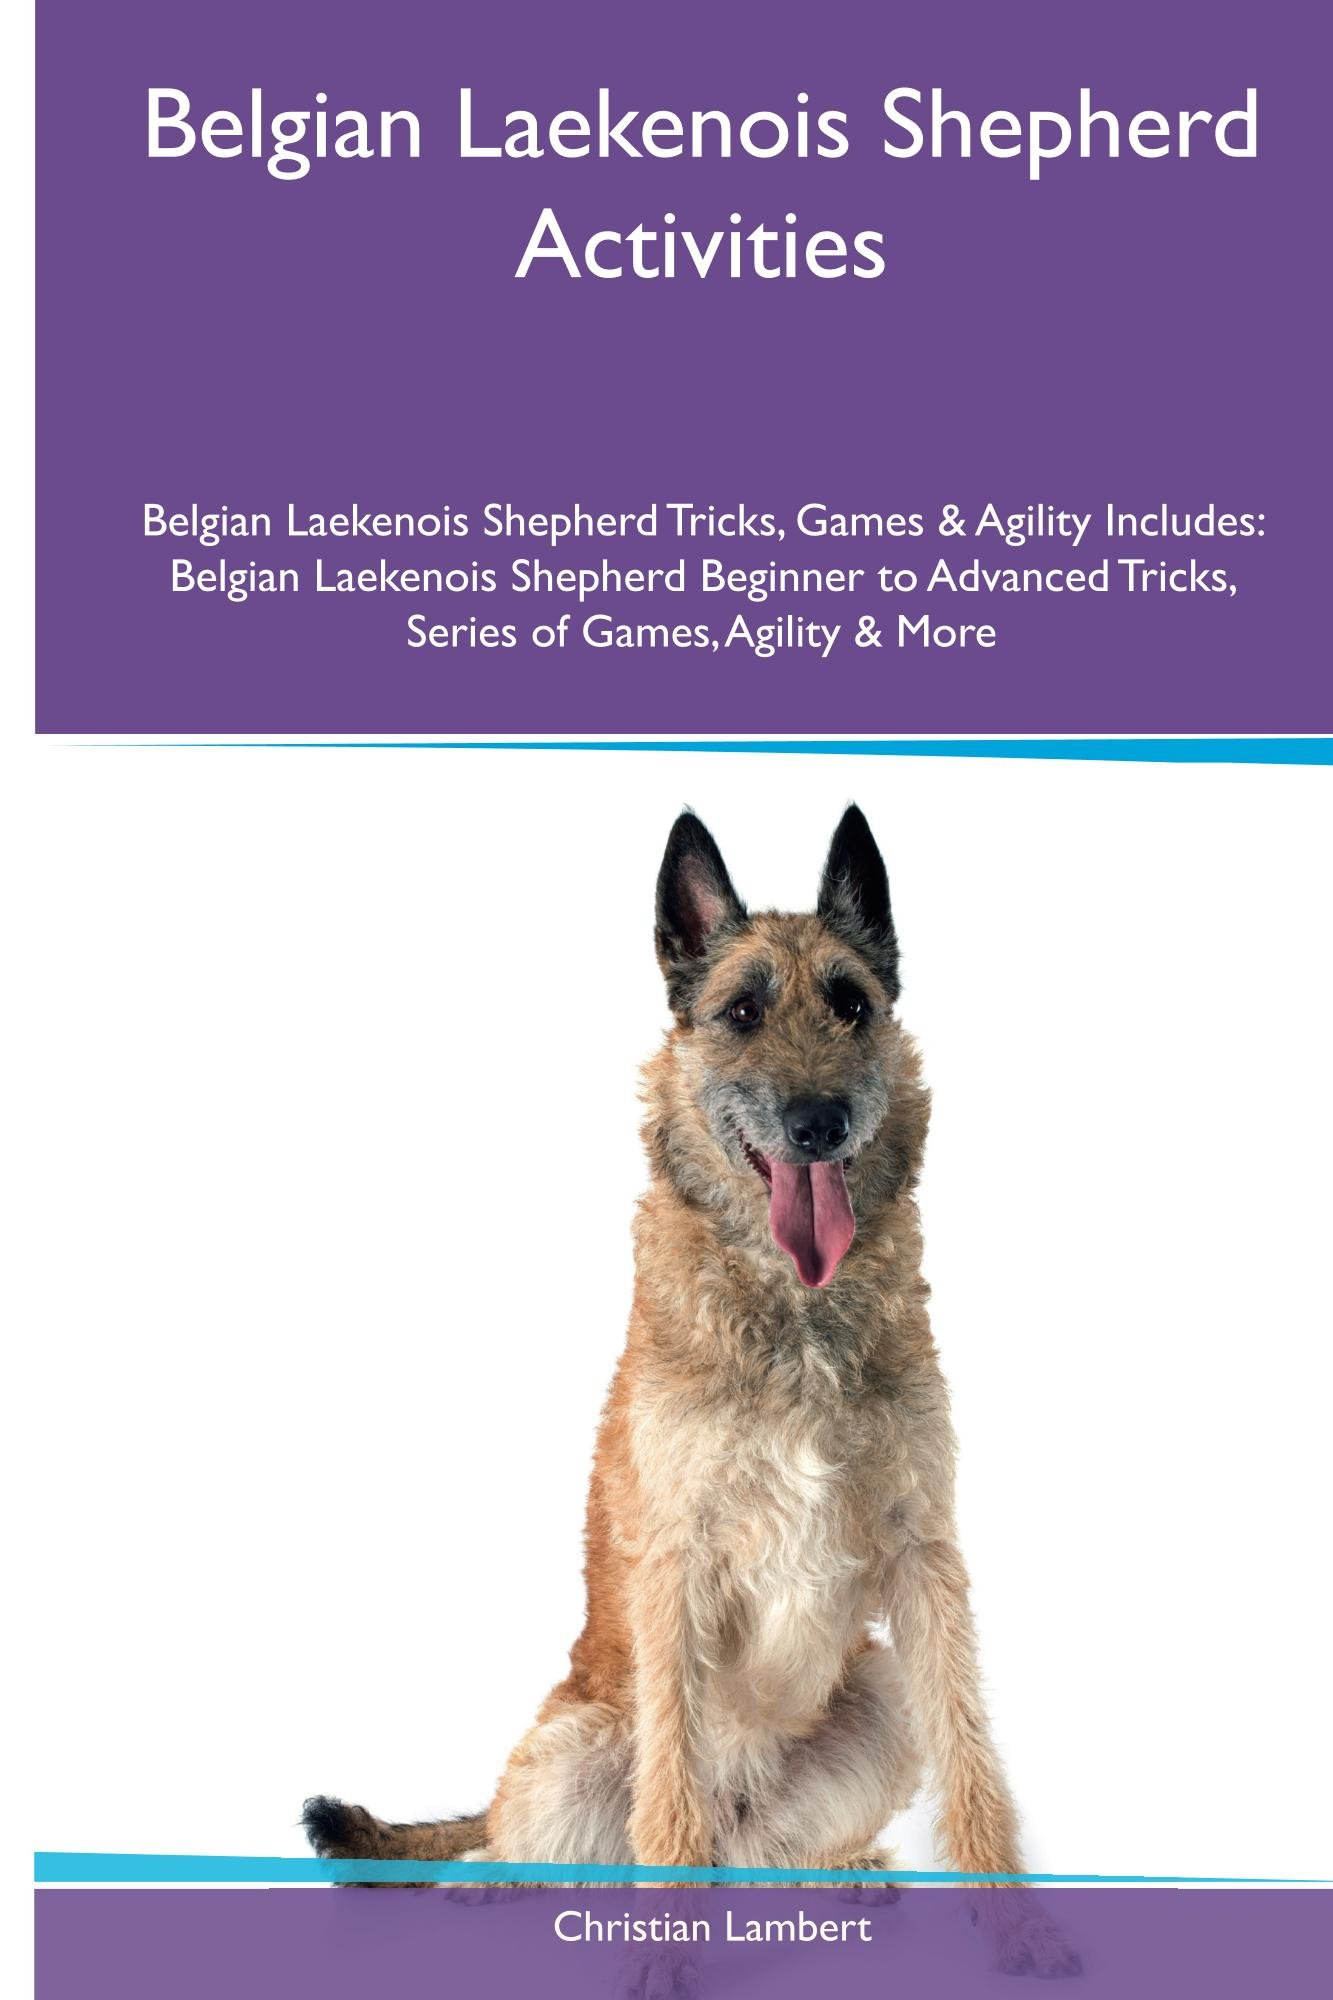 Belgian Laekenois Shepherd Activities Belgian Laekenois Shepherd Tricks, Games & Agility. Includes: Belgian Laekenois Shepherd Beginner to Advanced Tricks, Series of Games, Agility and More